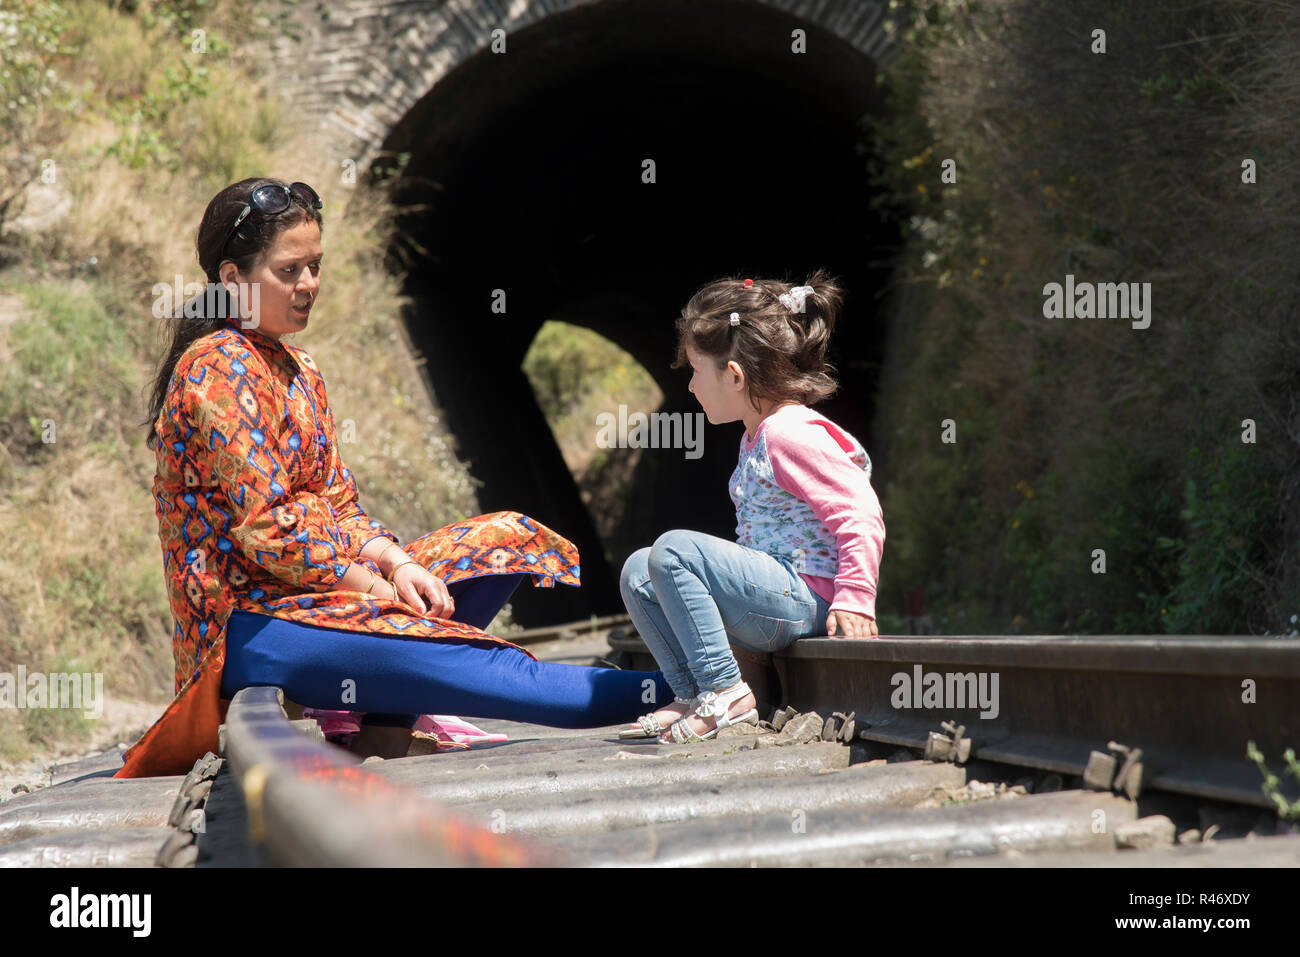 Mother and daughter sitting on a rail track, talking. - Stock Image